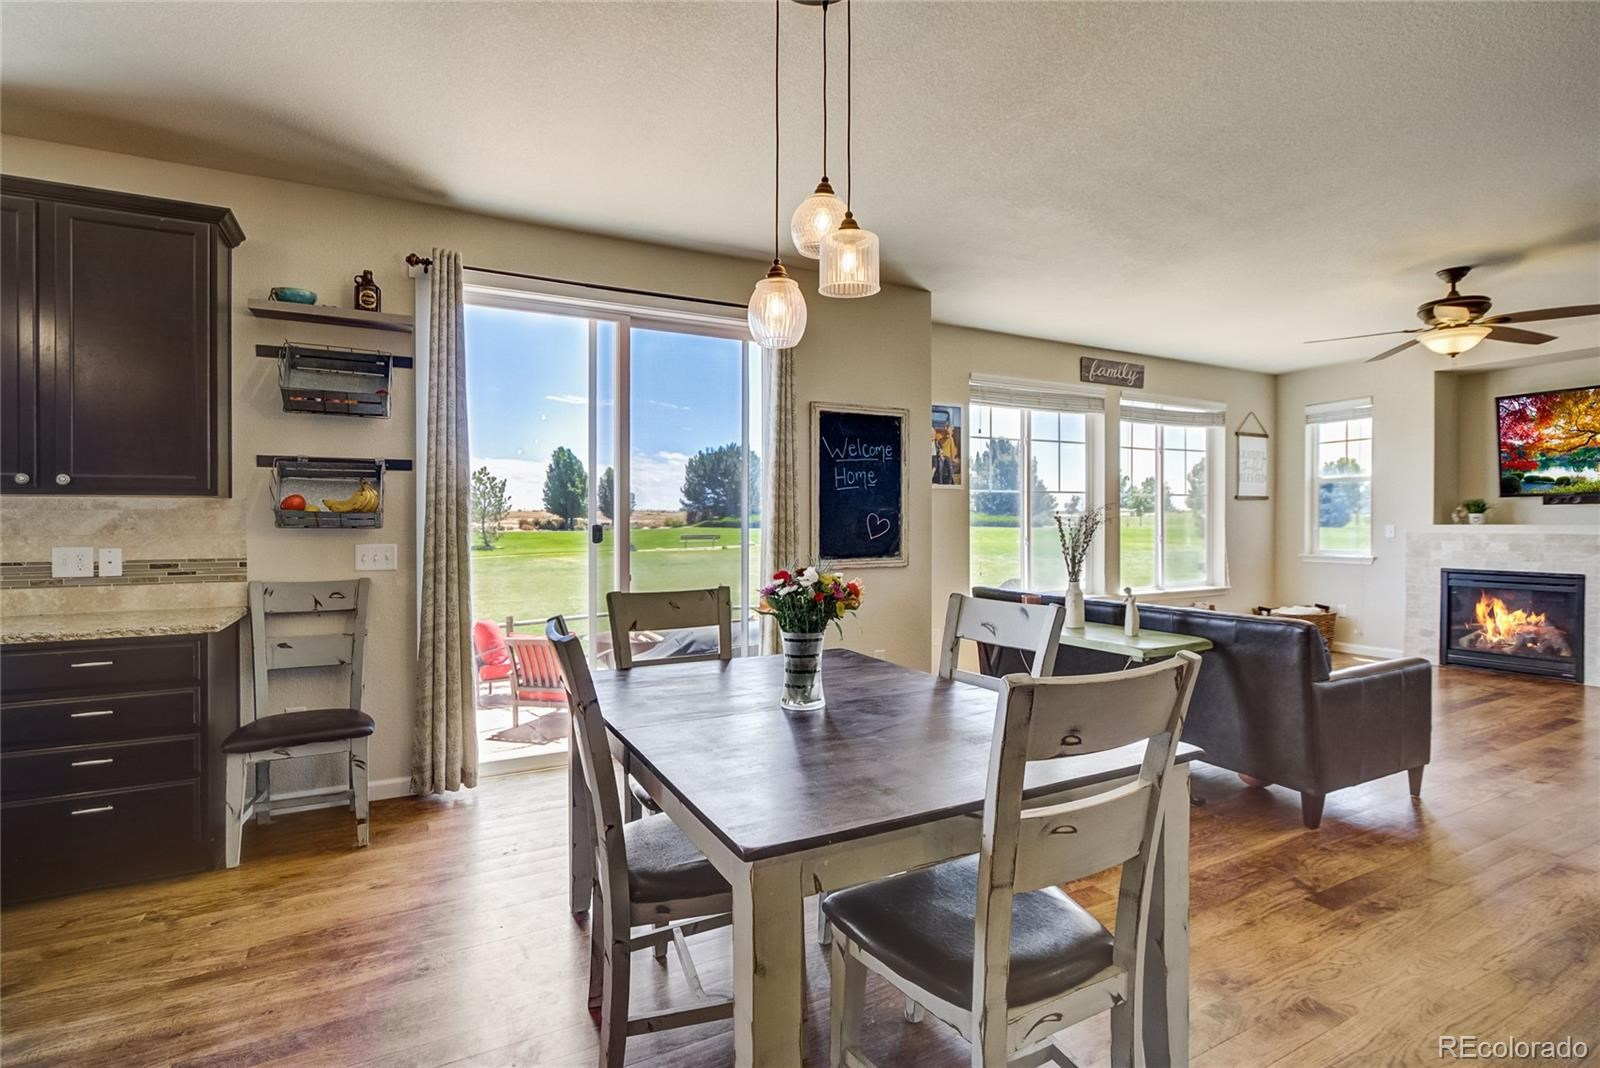 MLS# 8165557 - 8 - 5734 Pineview Court, Windsor, CO 80550